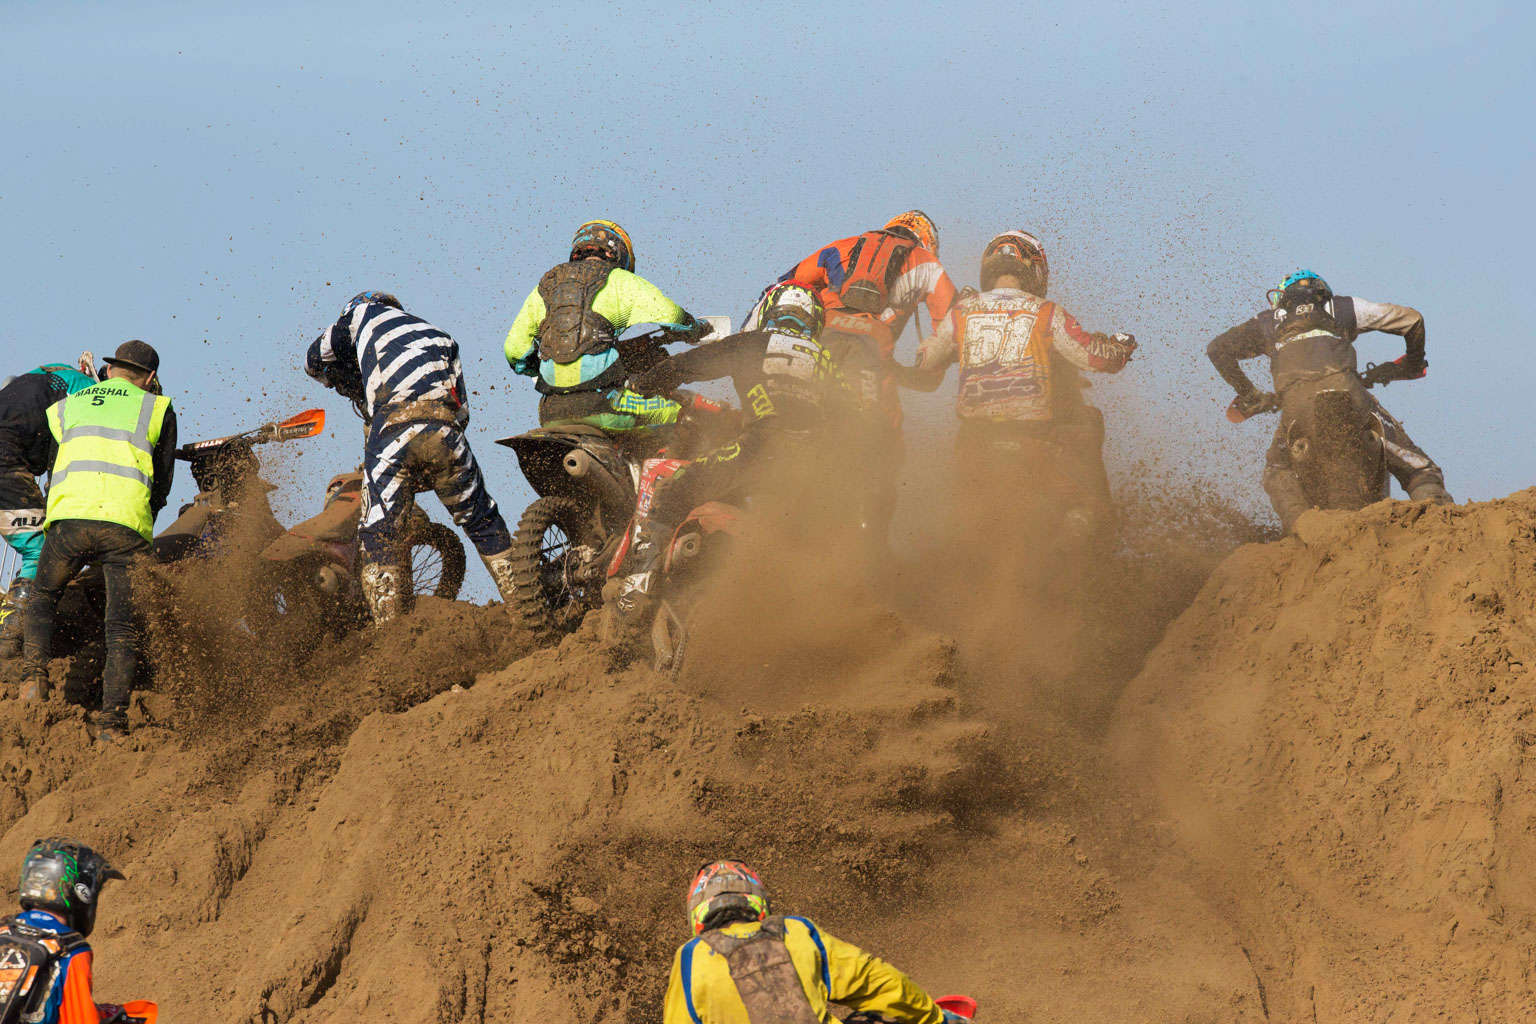 Graeme Irwin (Buildbase Honda) on his second lap while others try to get over the big dune on their first.